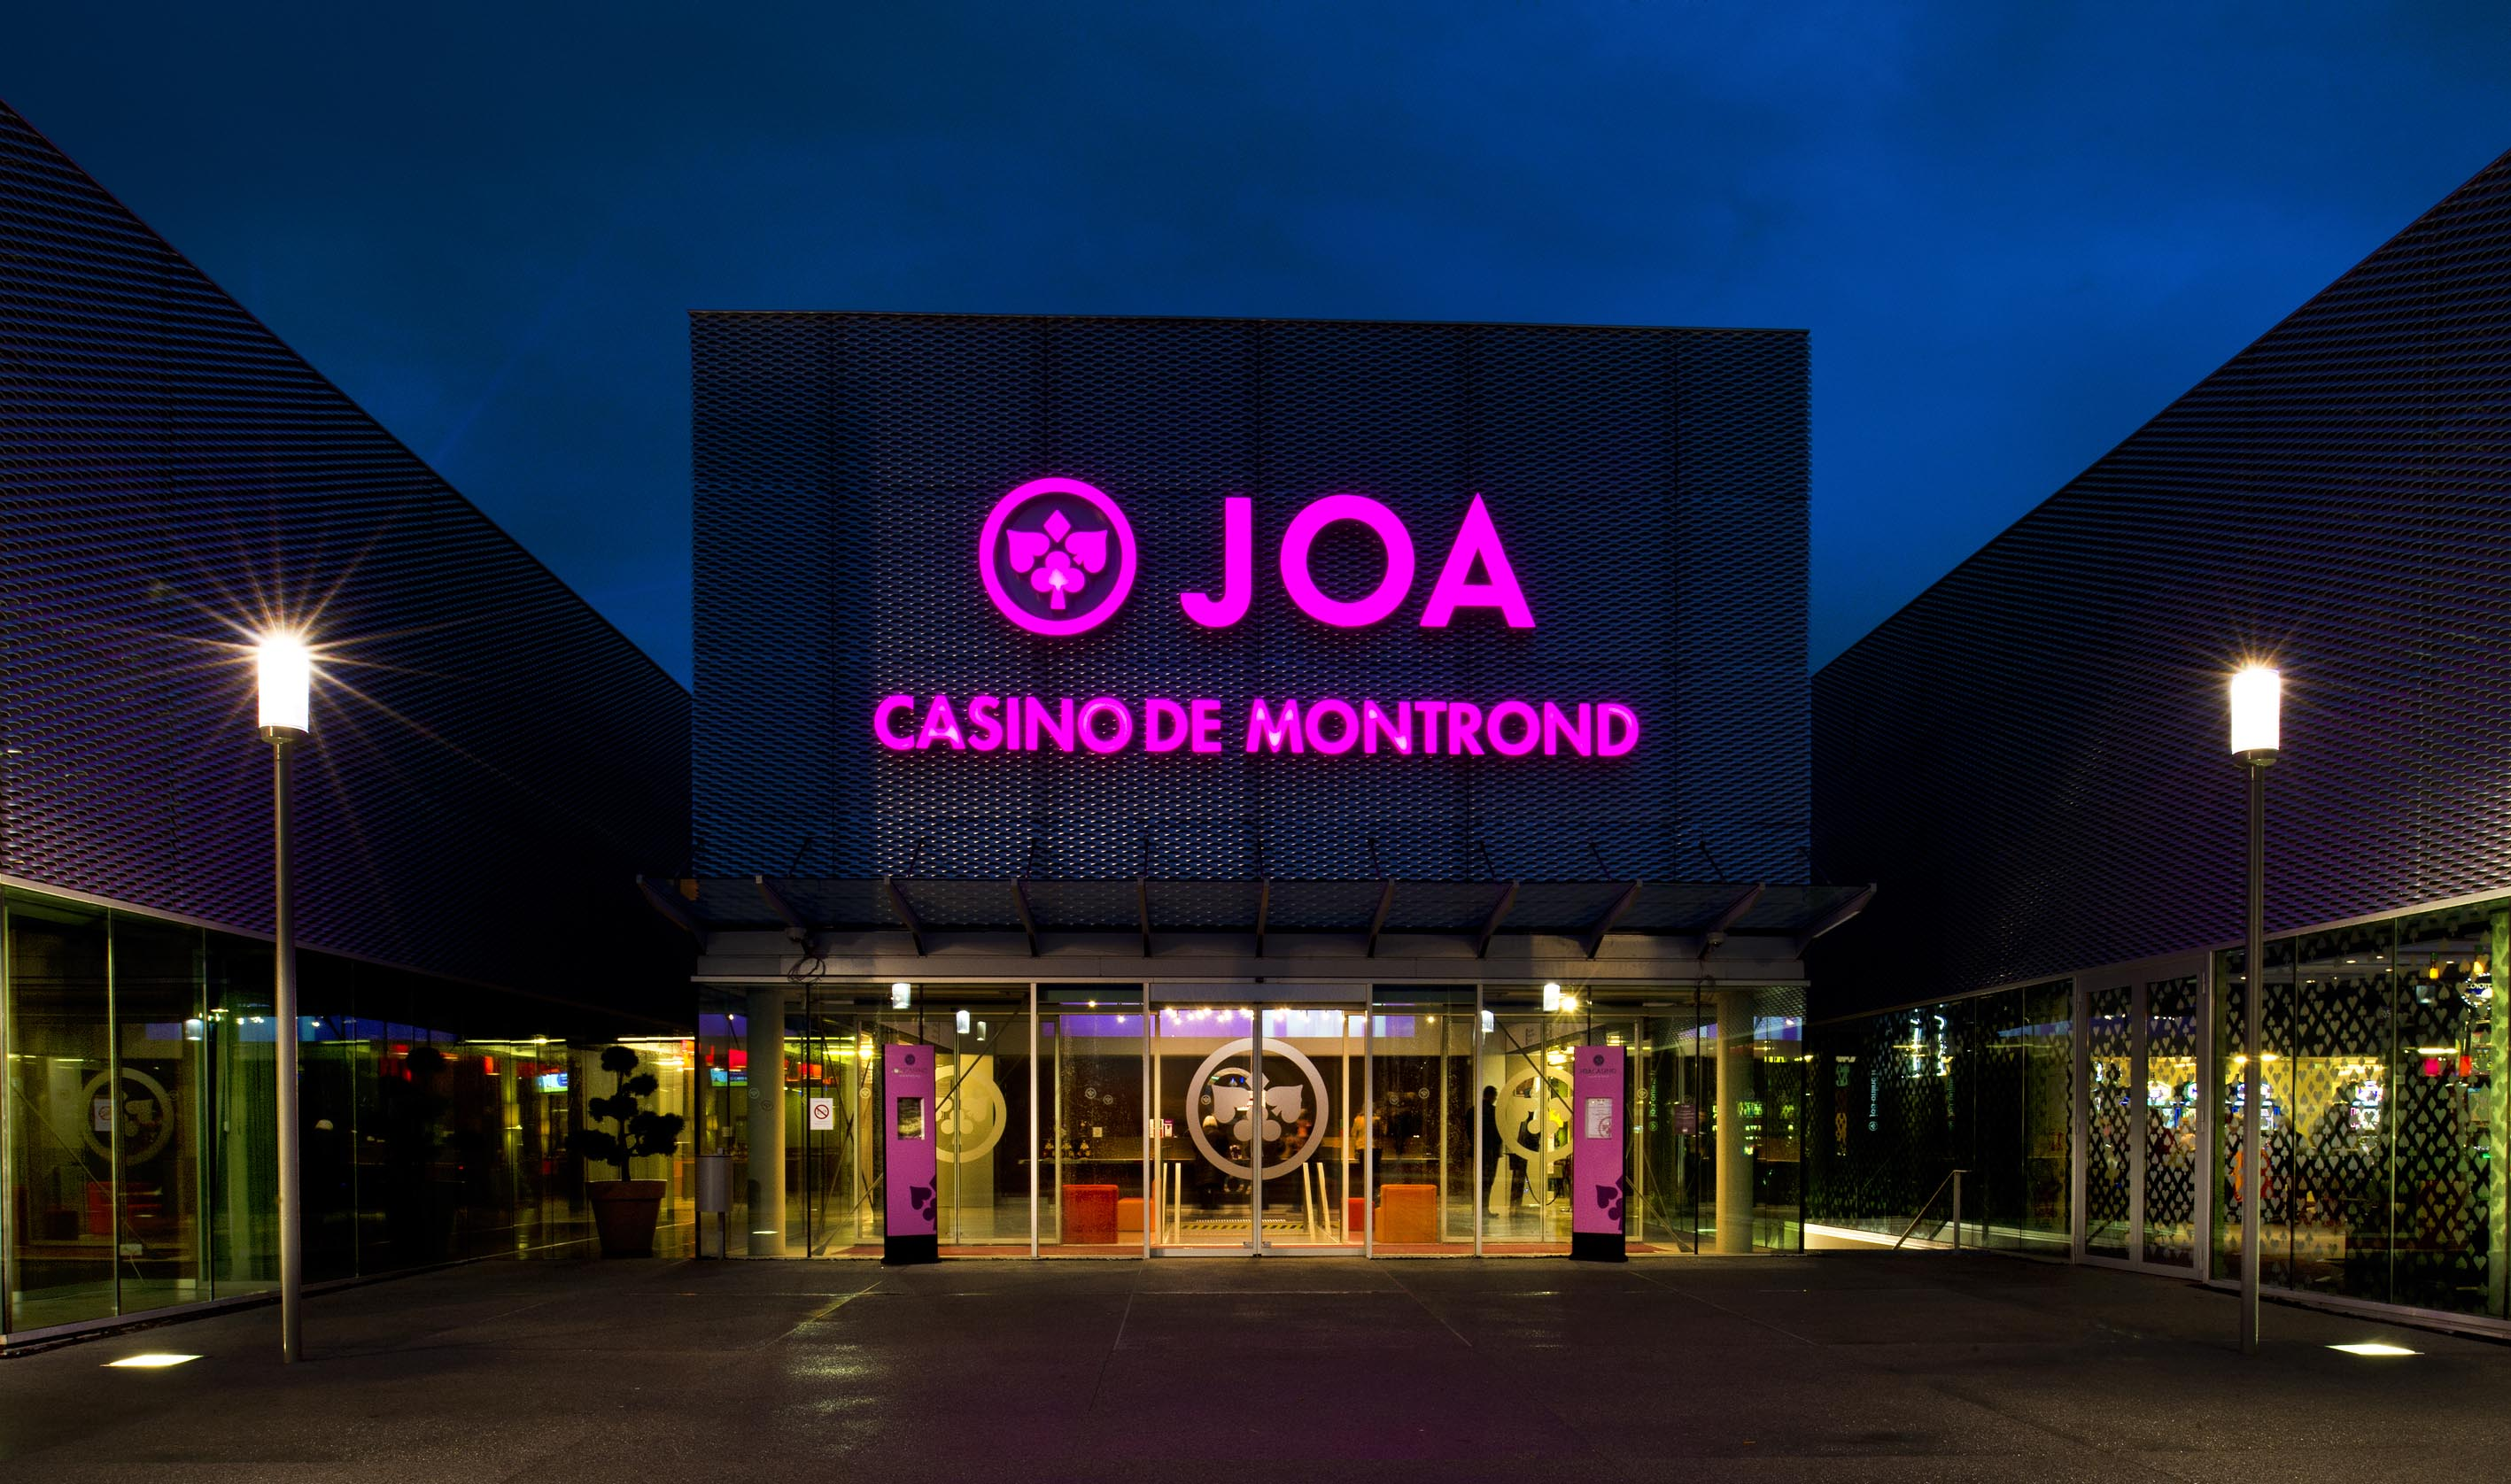 Casino joa montrond les bains 14 juillet best tablet in india under 15000 with sim card slot